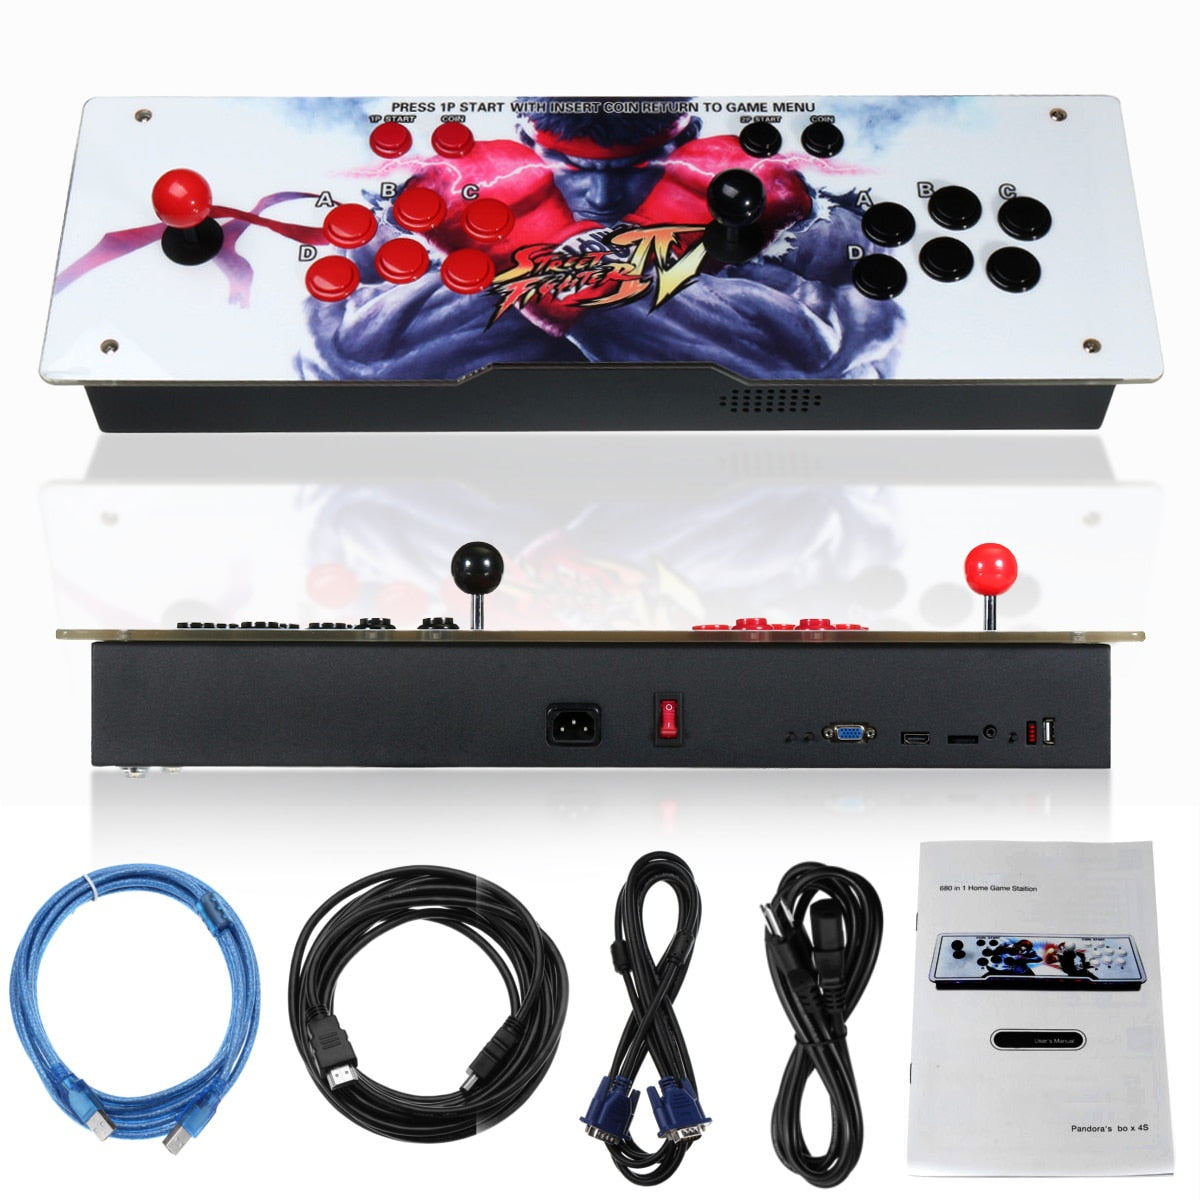 800 IN 1 Box 4s  Retro Video Games Arcade Console LED HD 2 Joystick